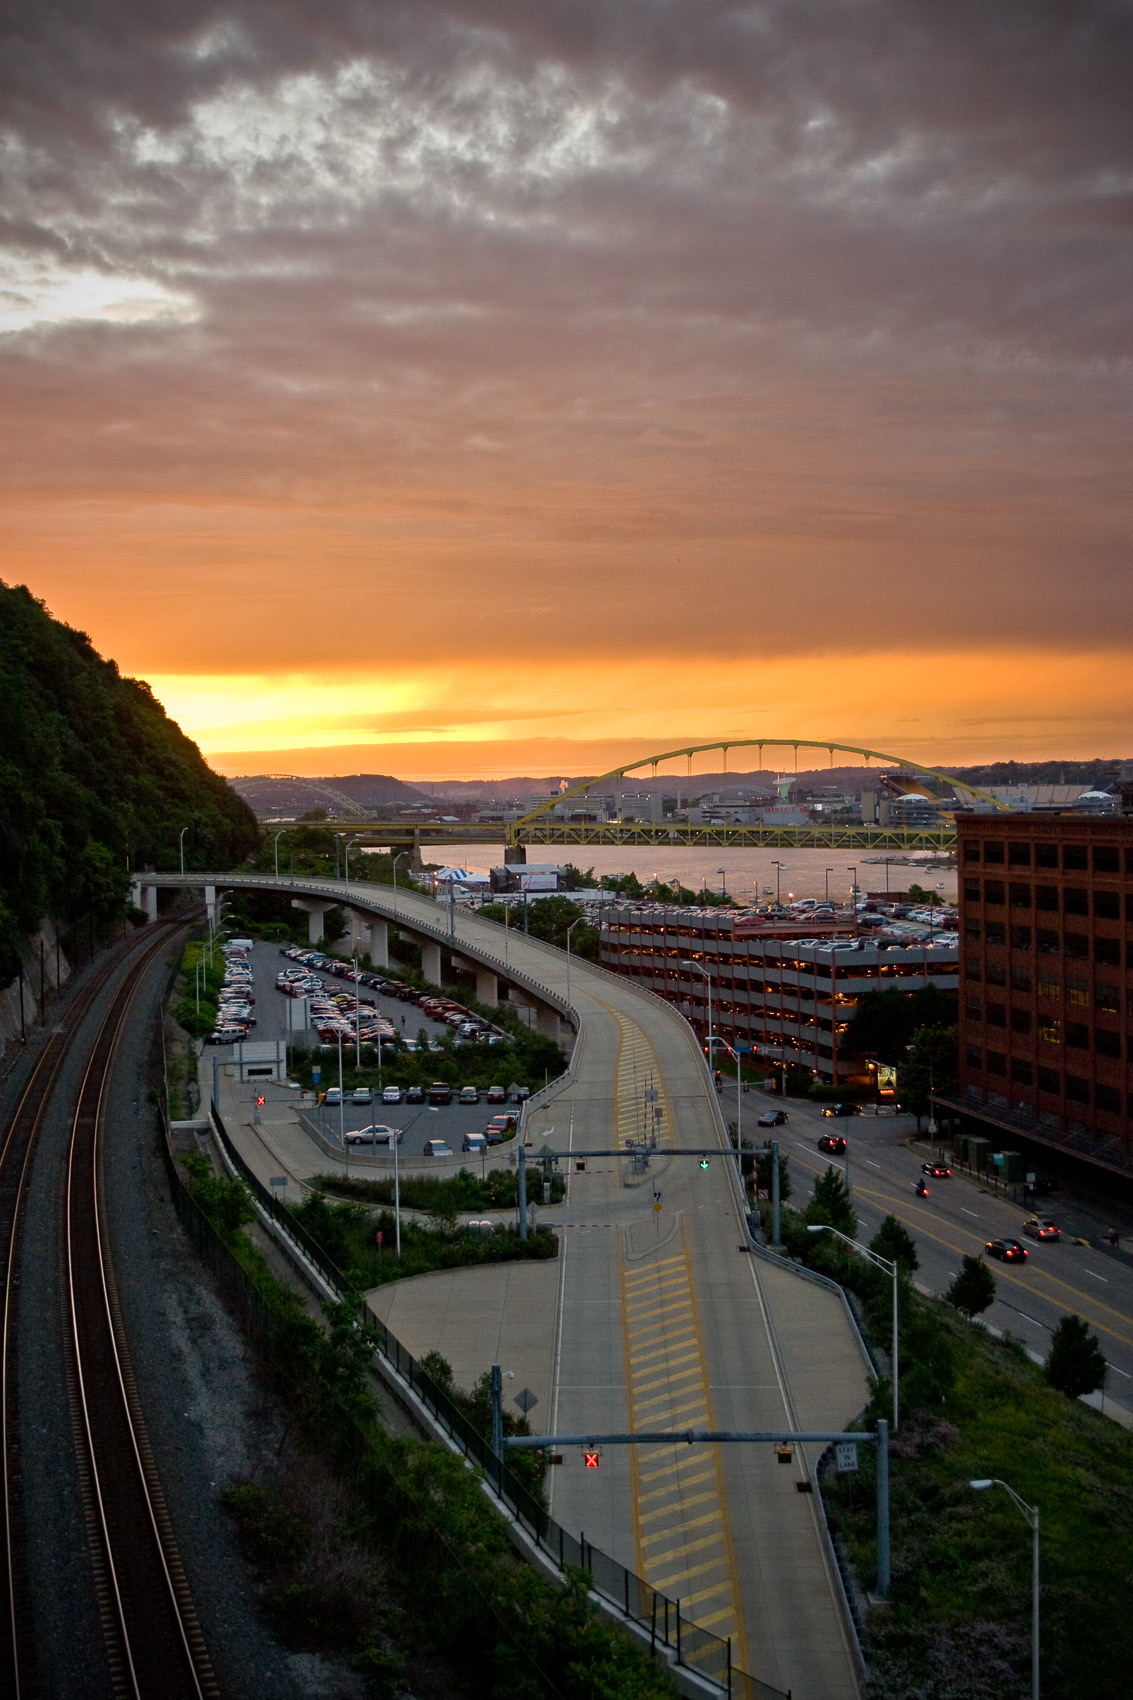 Sunset Photograph on Pittsburgh